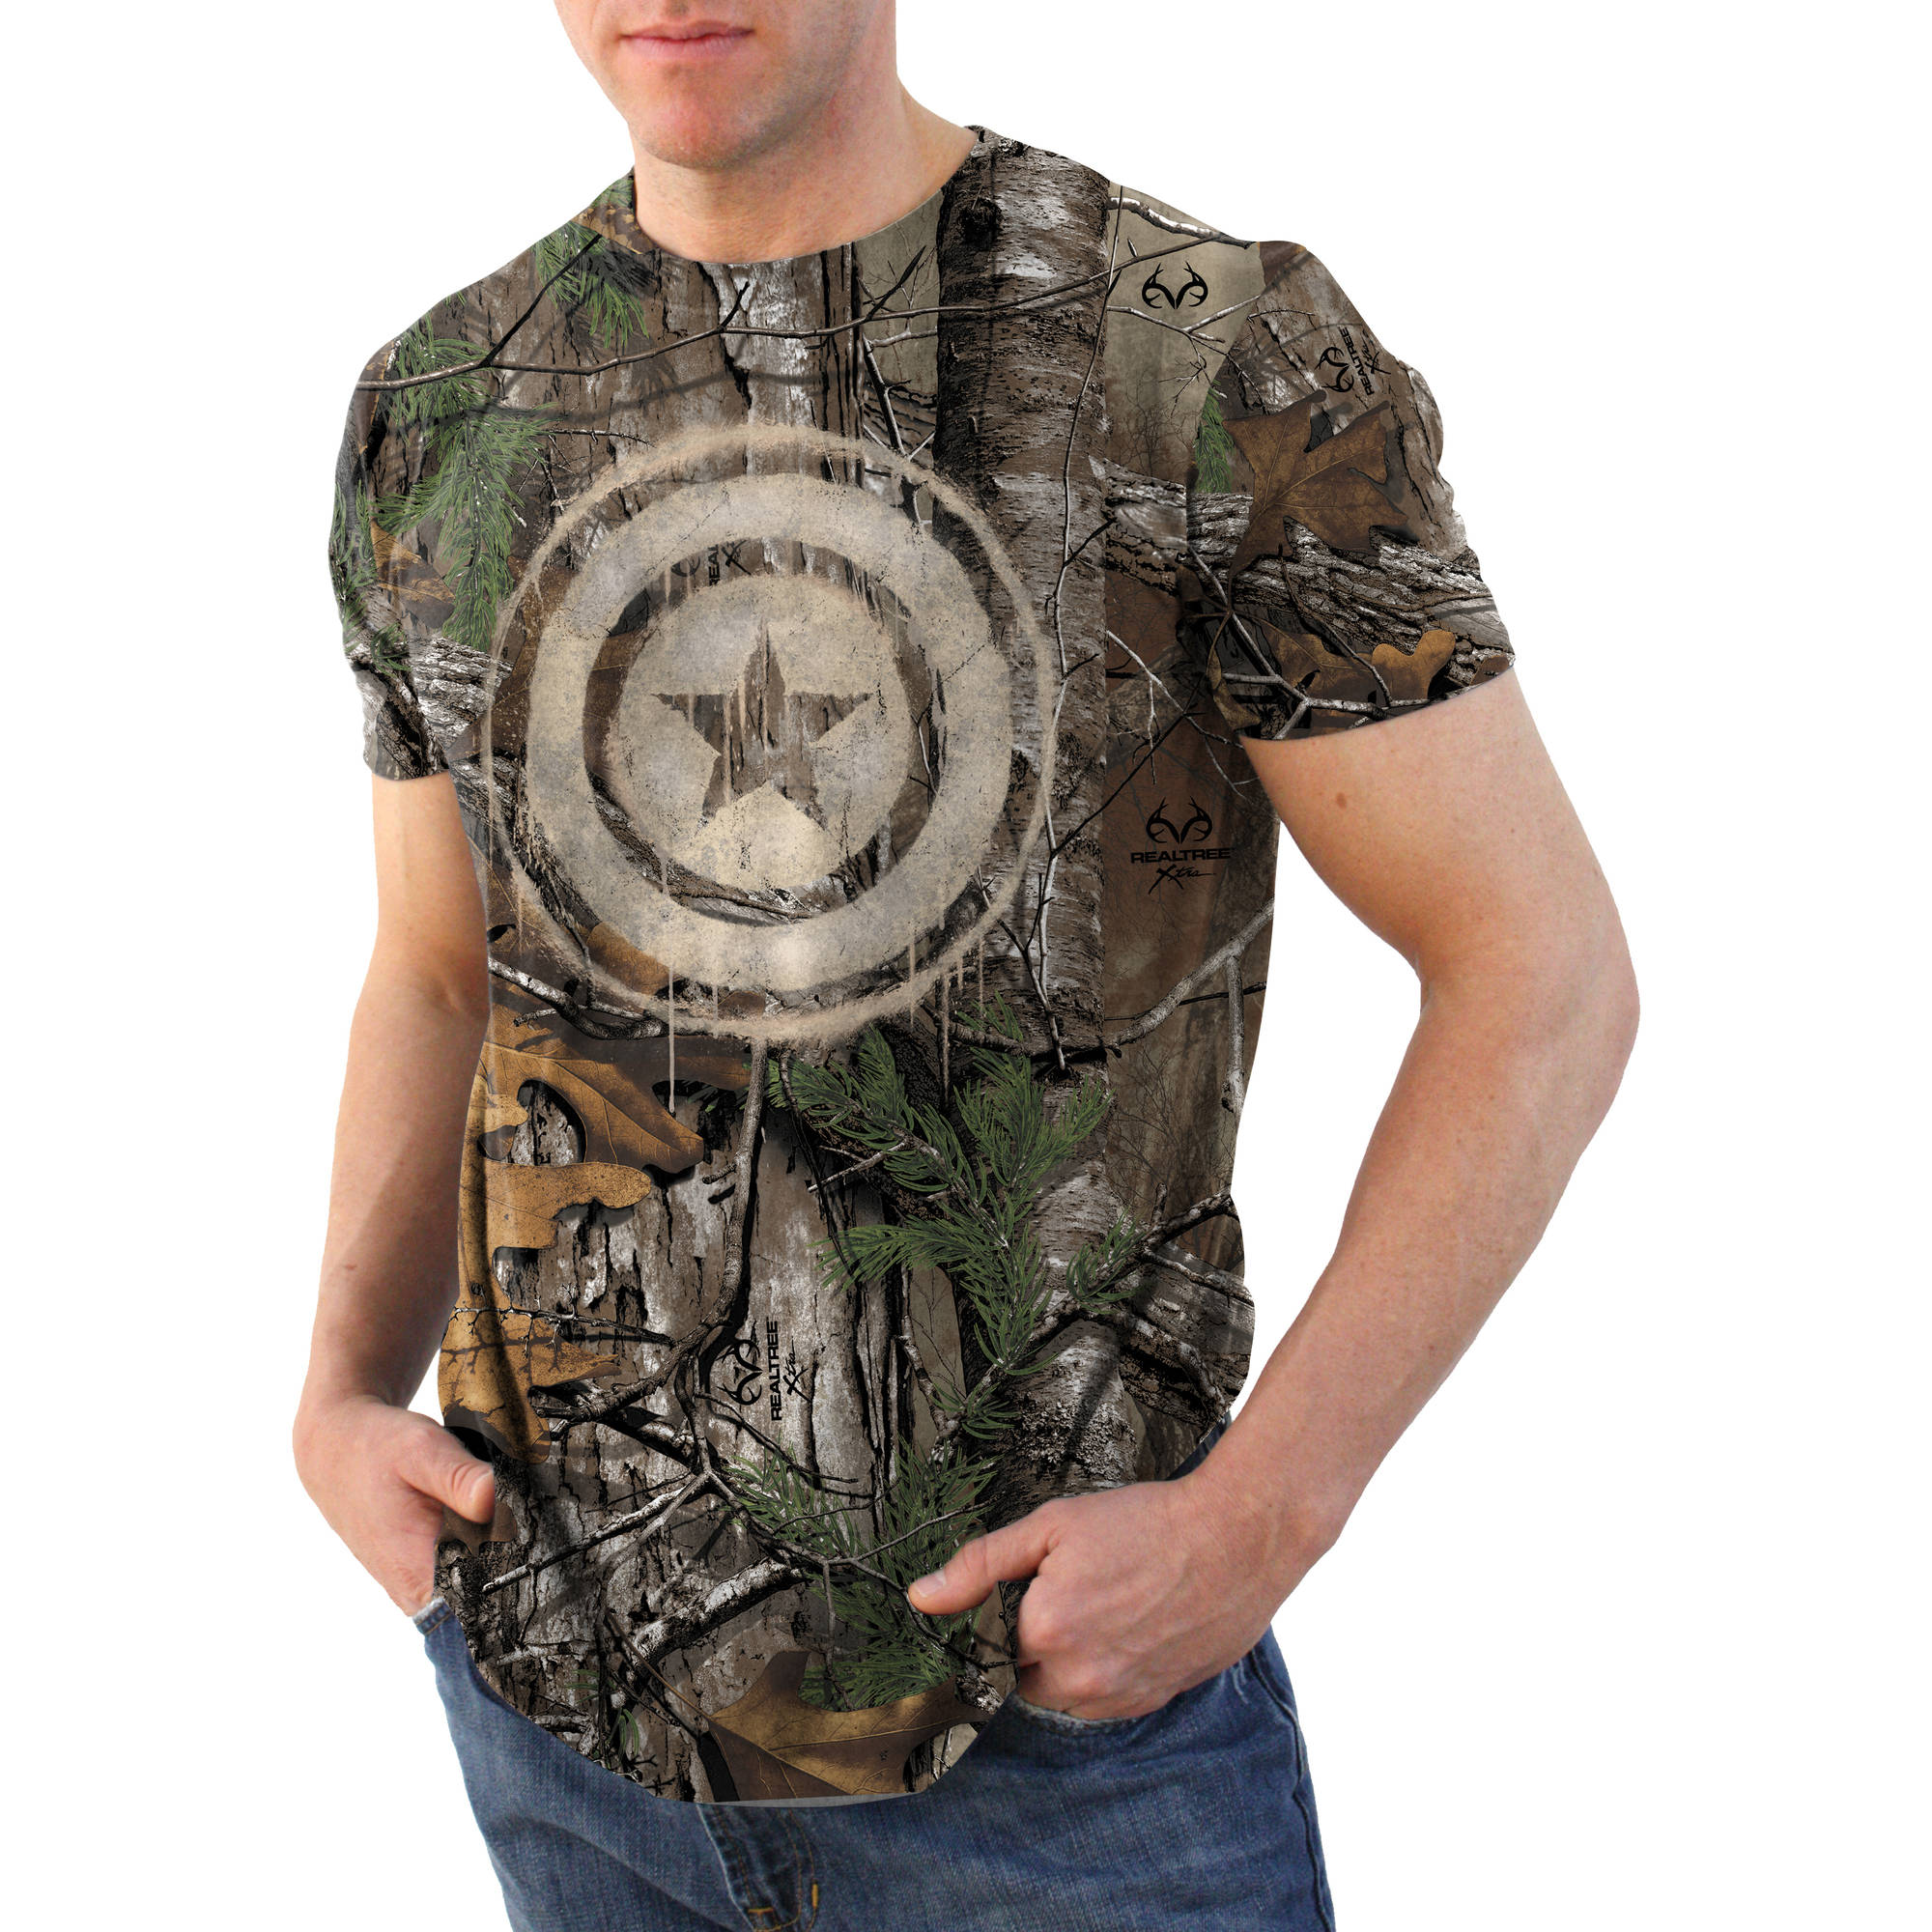 Captain America Primary Realtree Camo Big Men's Graphic Tee, 2XL